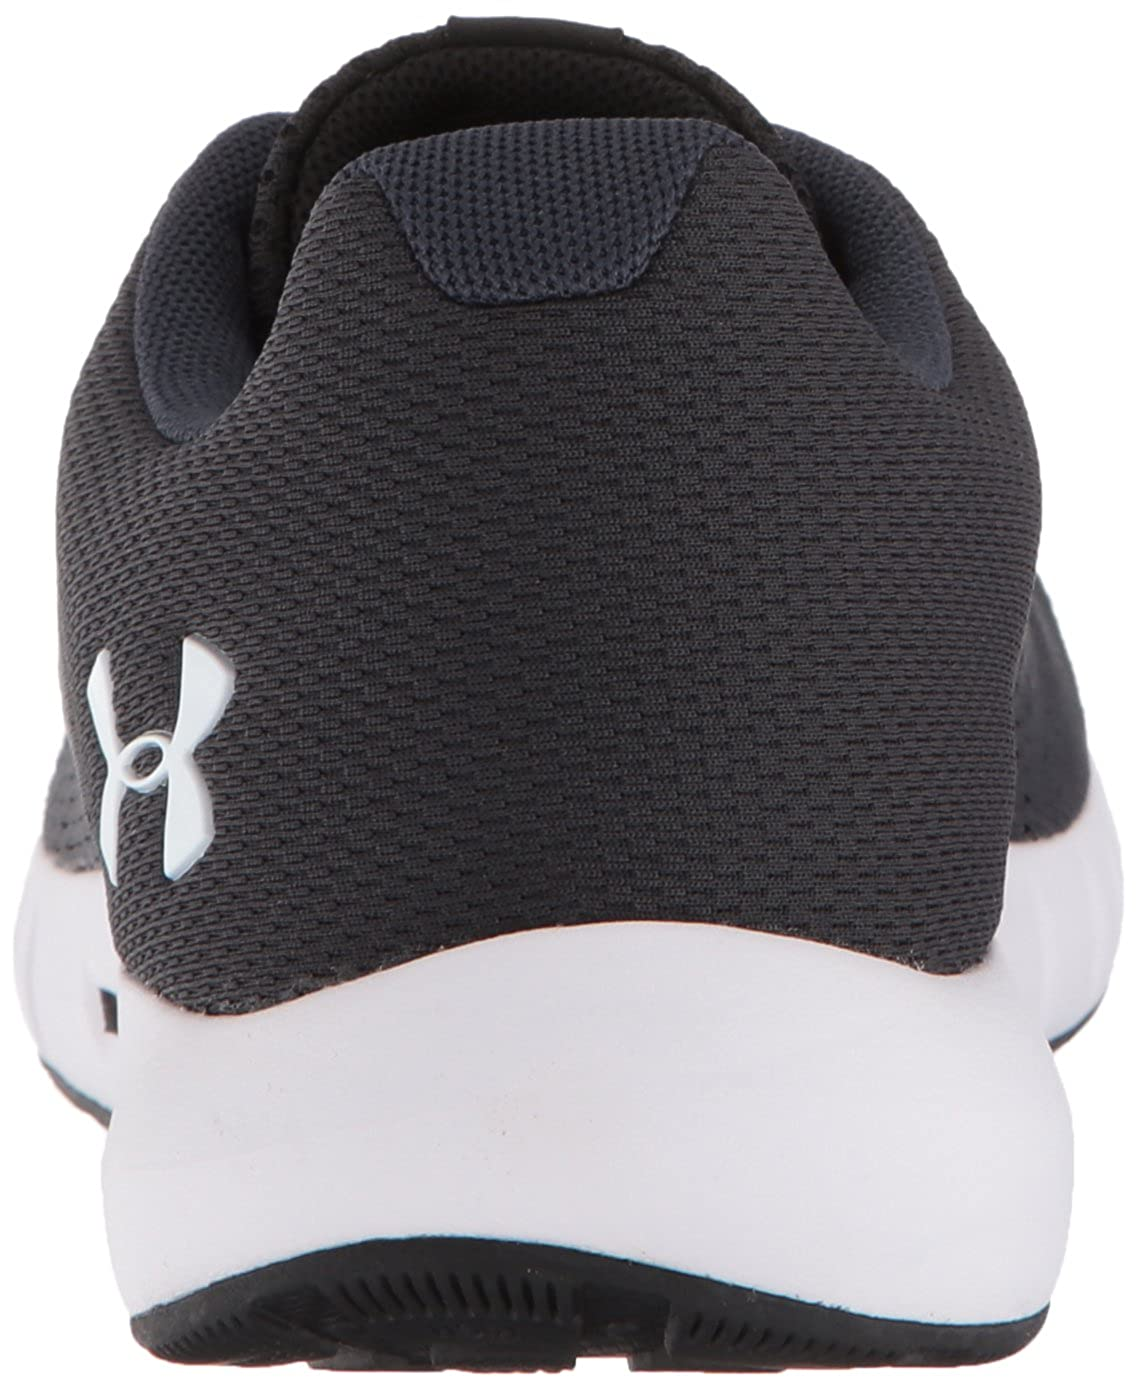 save off fc564 165bd Amazon.com   Under Armour Women s Micro G Pursuit Running Shoe   Road  Running